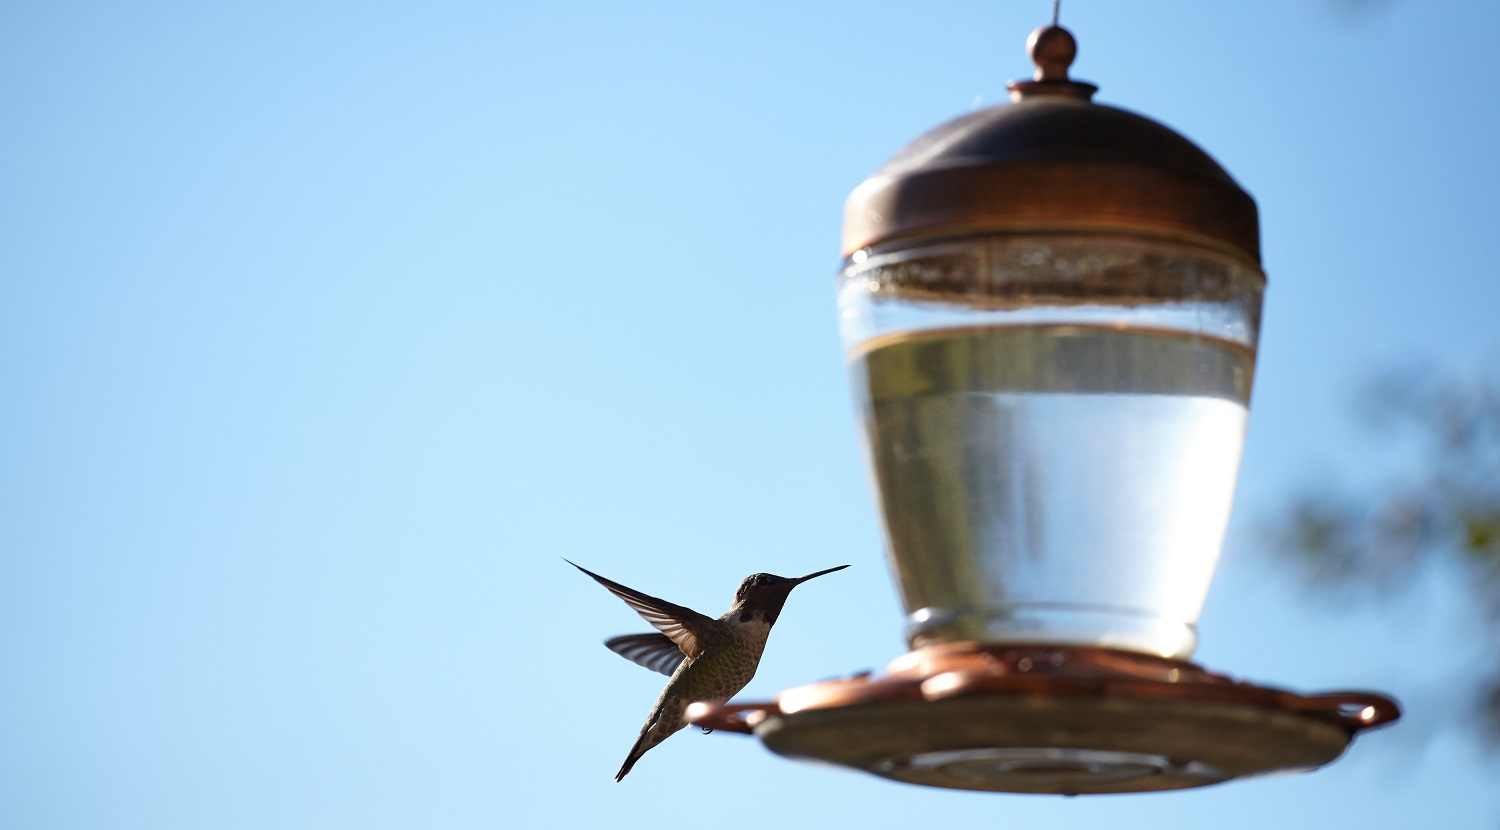 A closeup shot of a beautiful hummingbird sitting on a lamp with blurred background